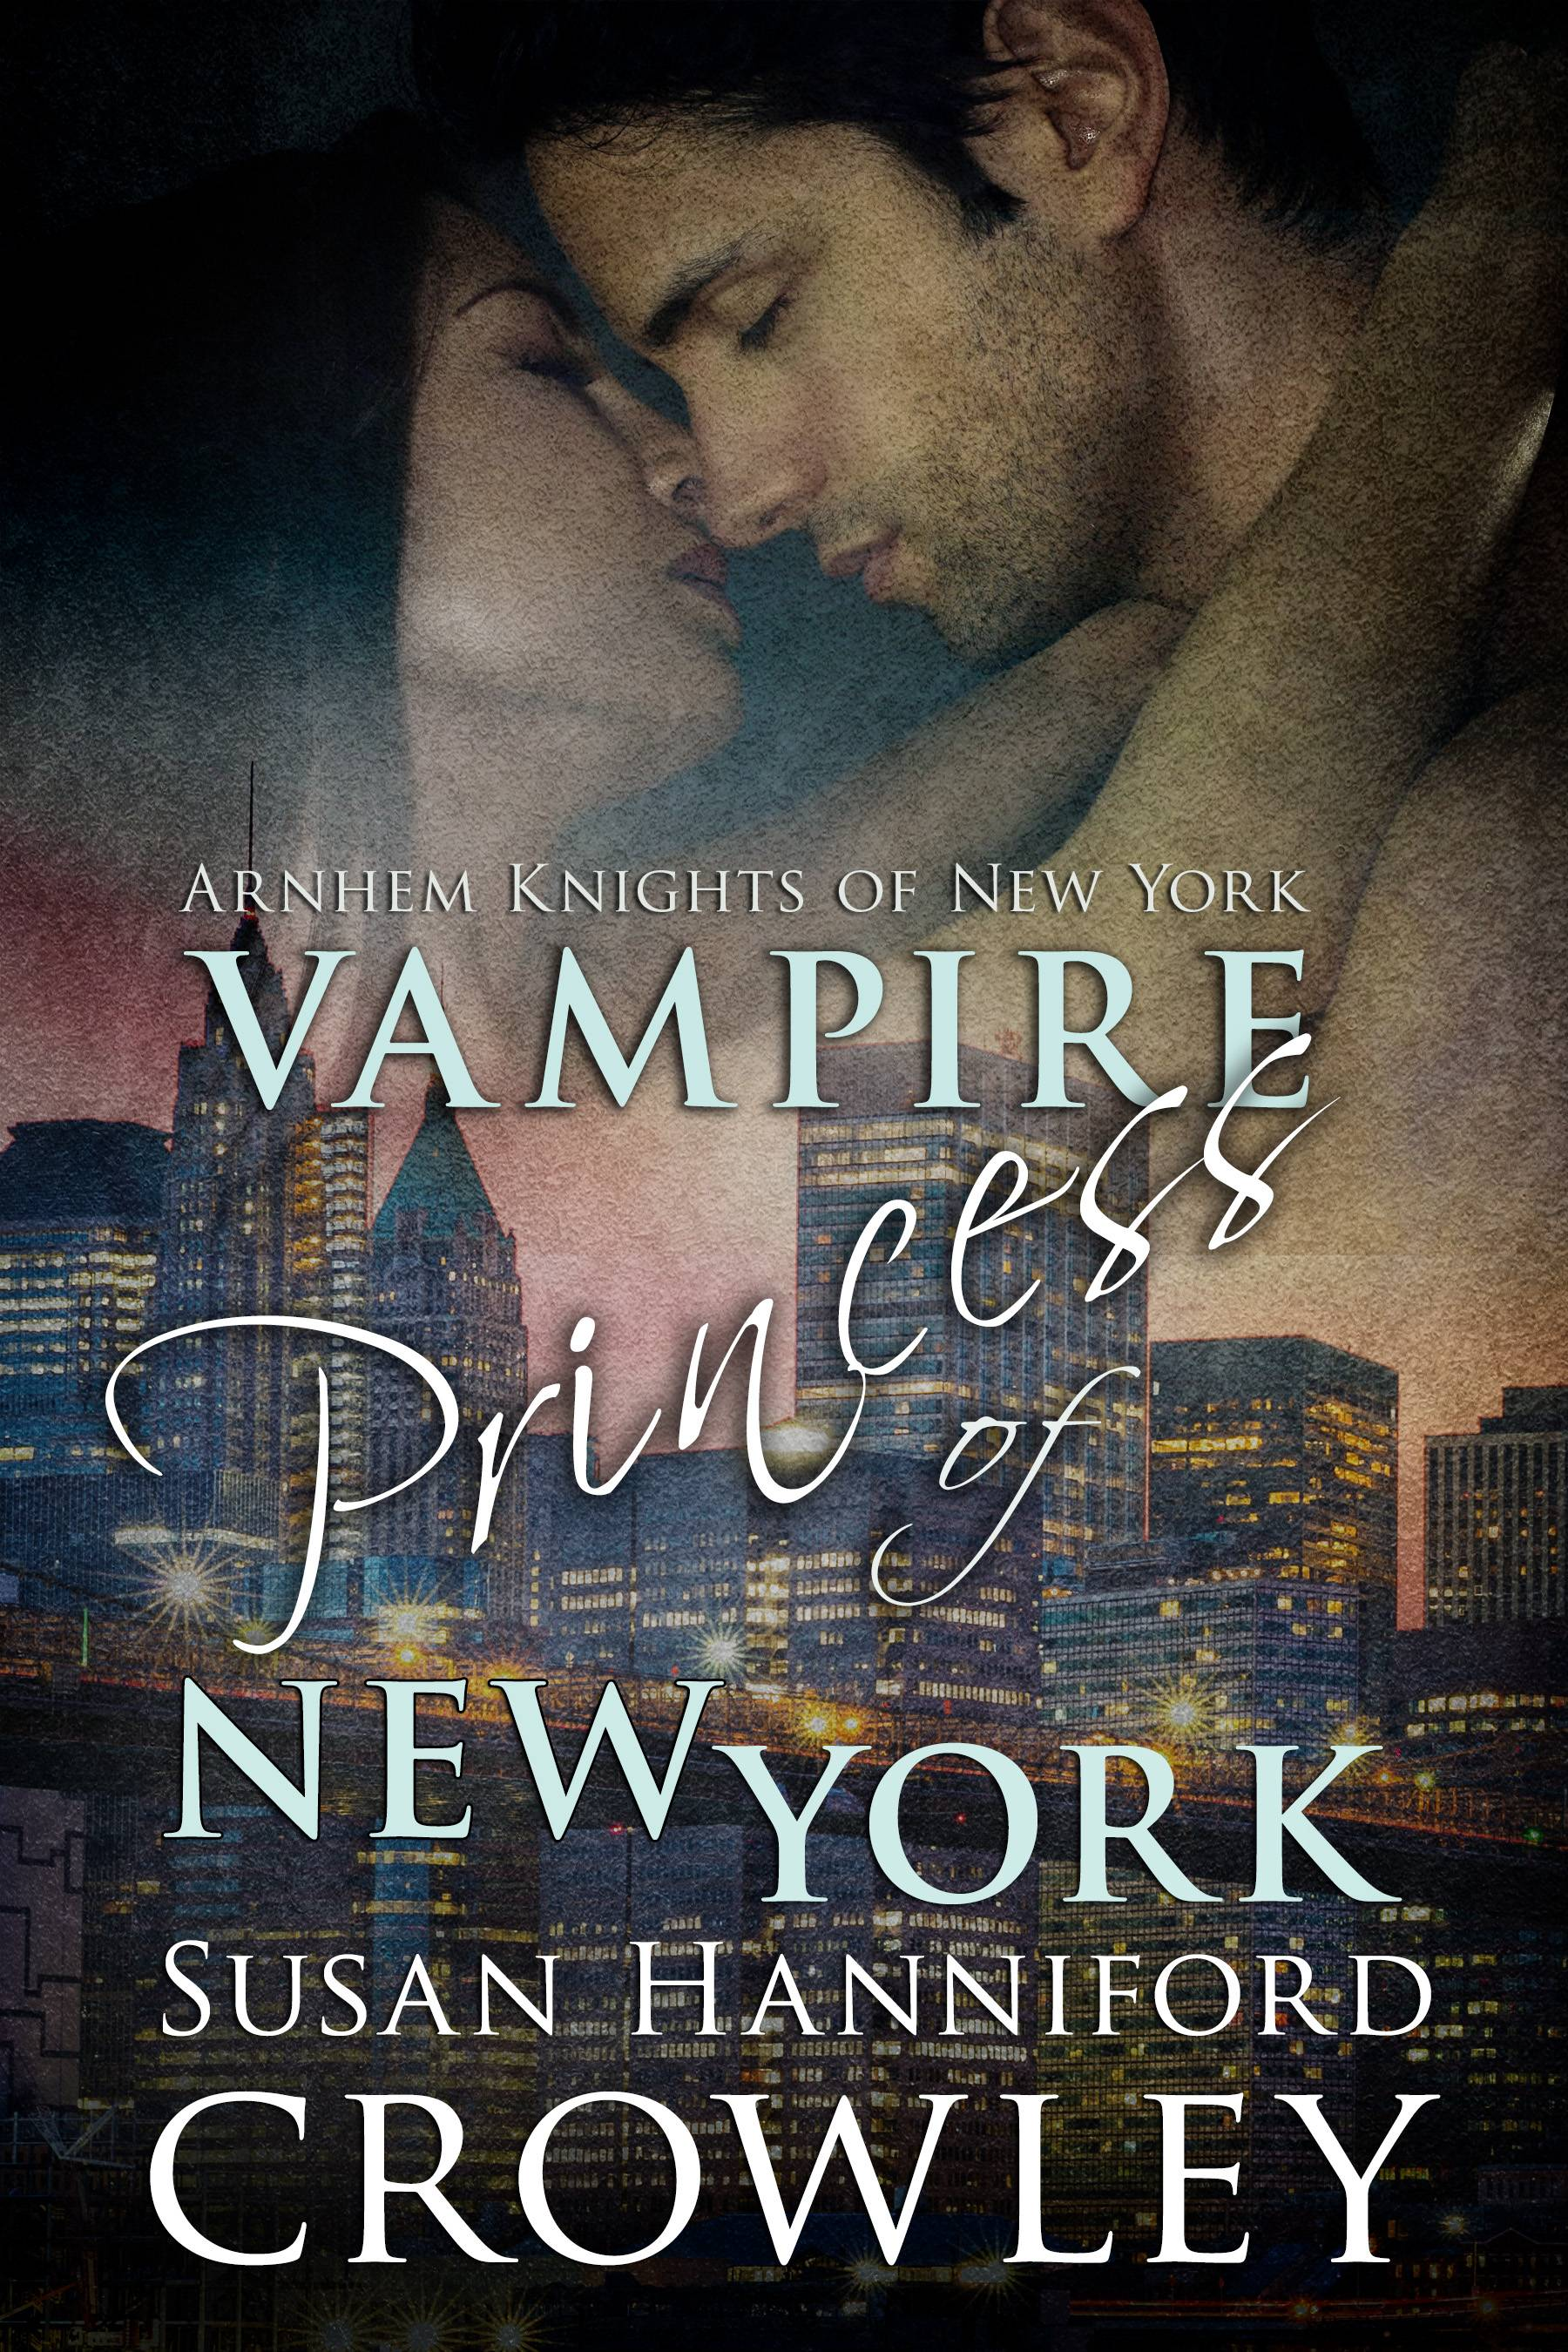 Vampire Princess of New York